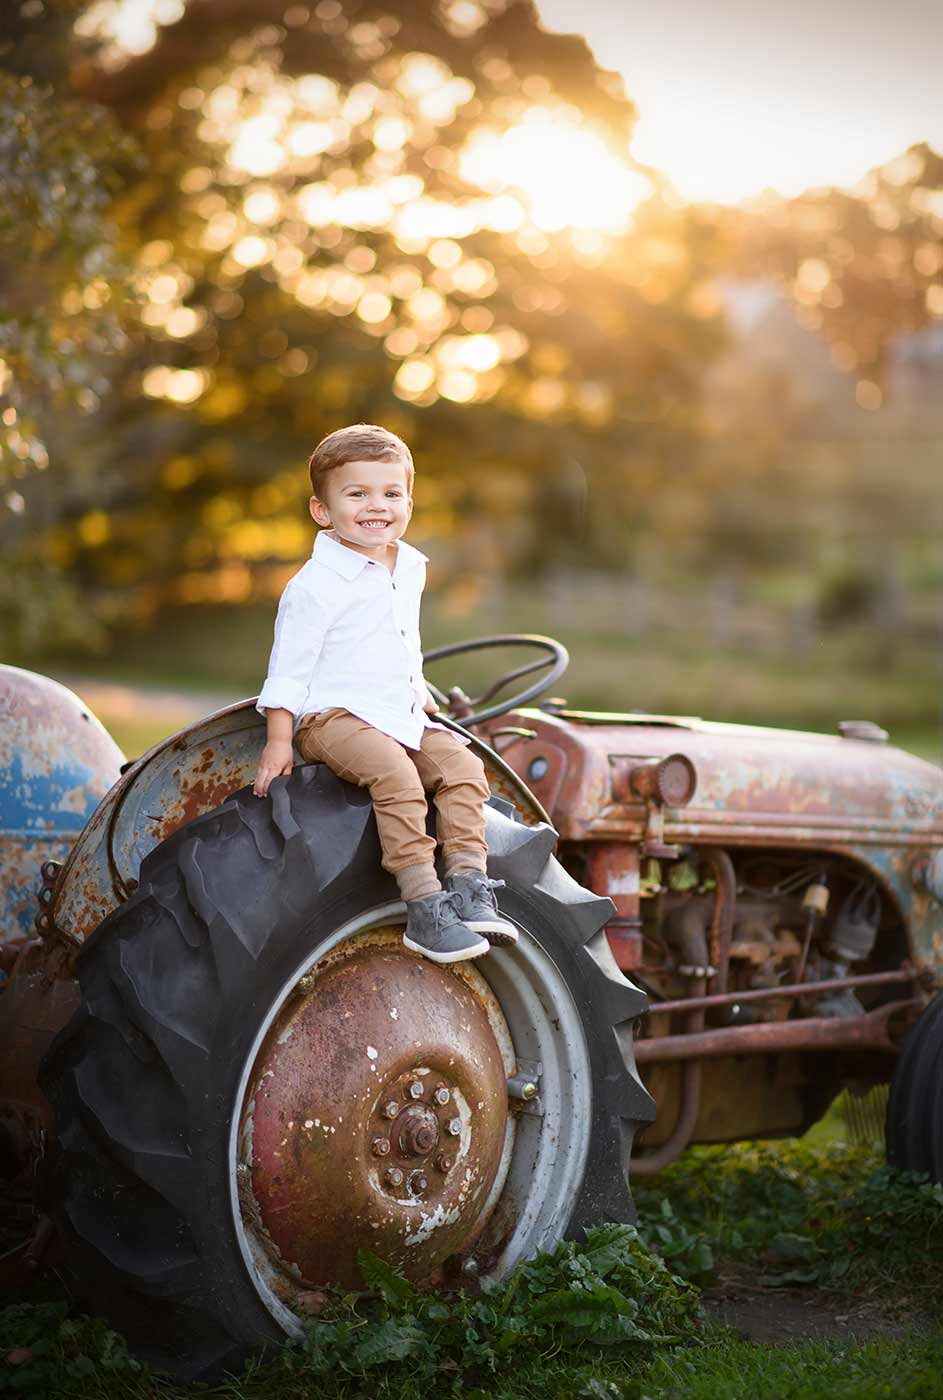 Boy sitting on a rusty tractor during sunset